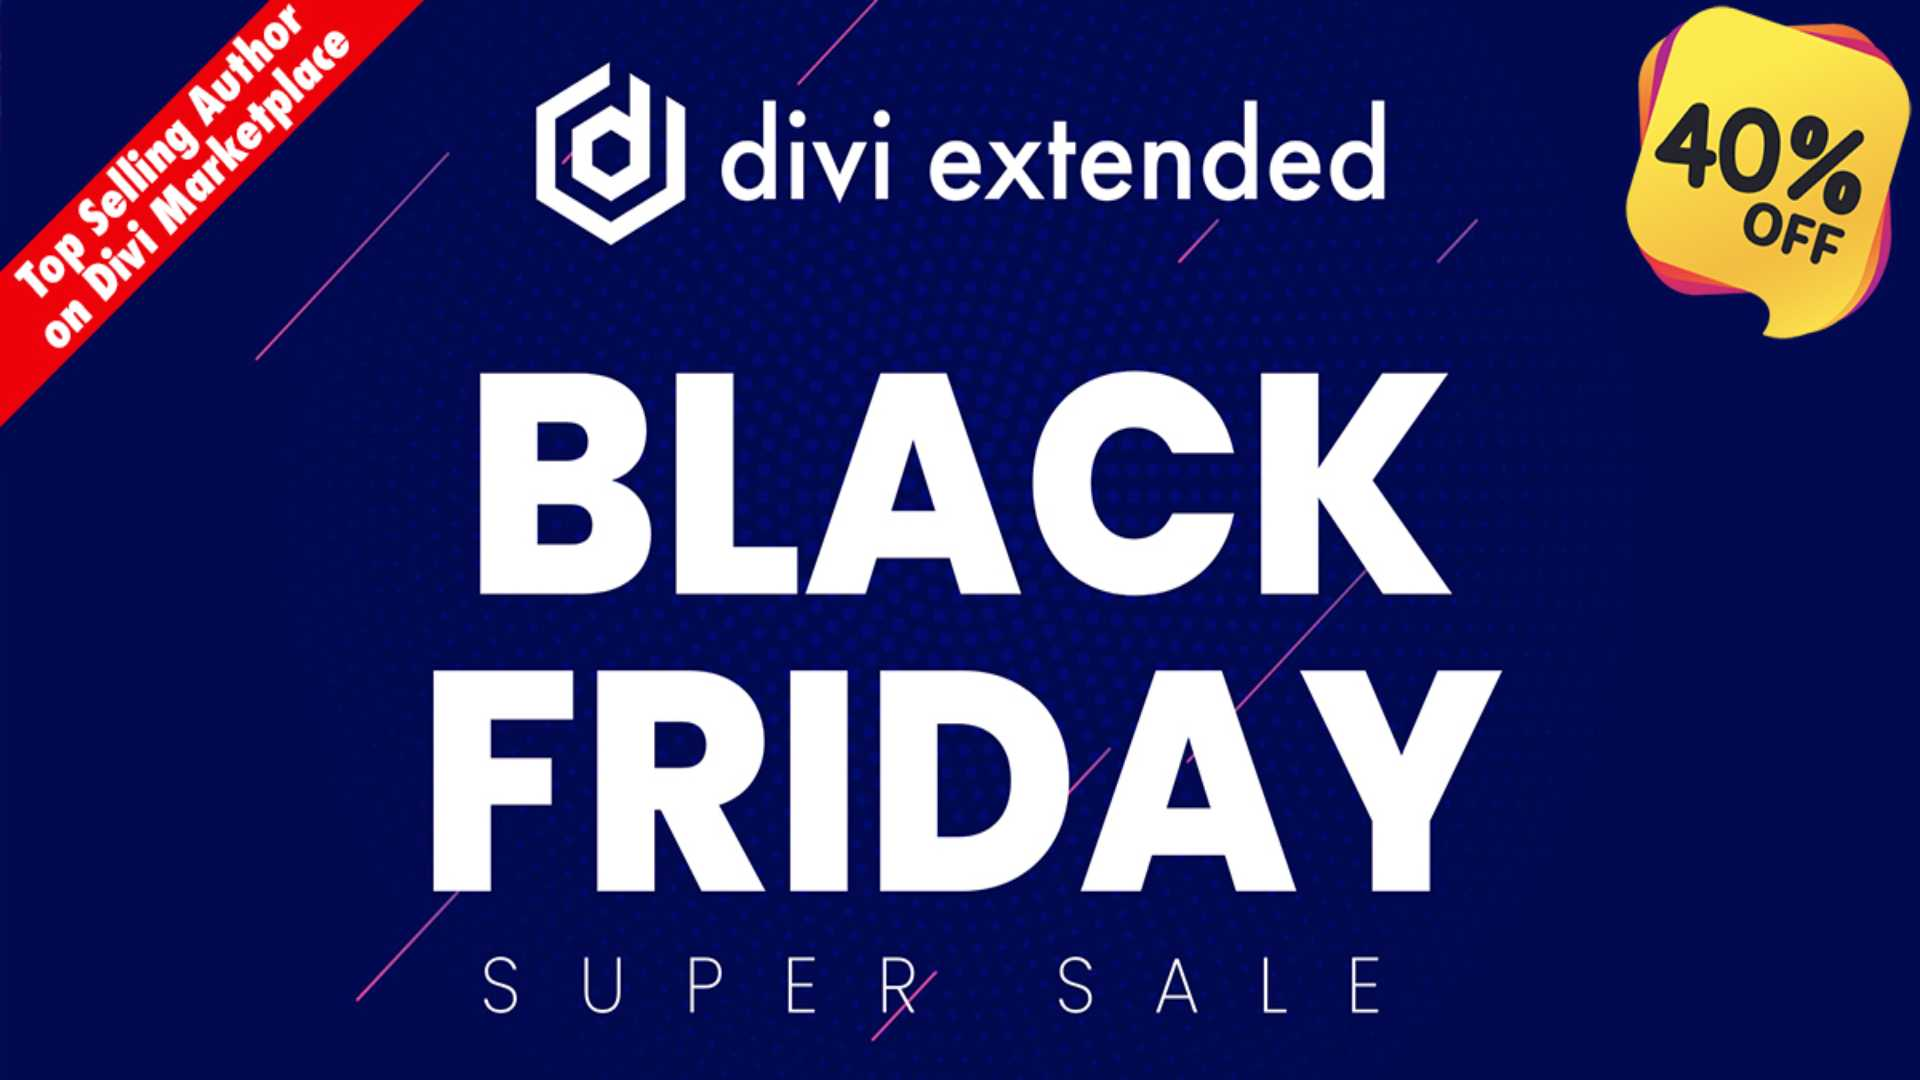 Divi Extended Black Friday 2020 Offers